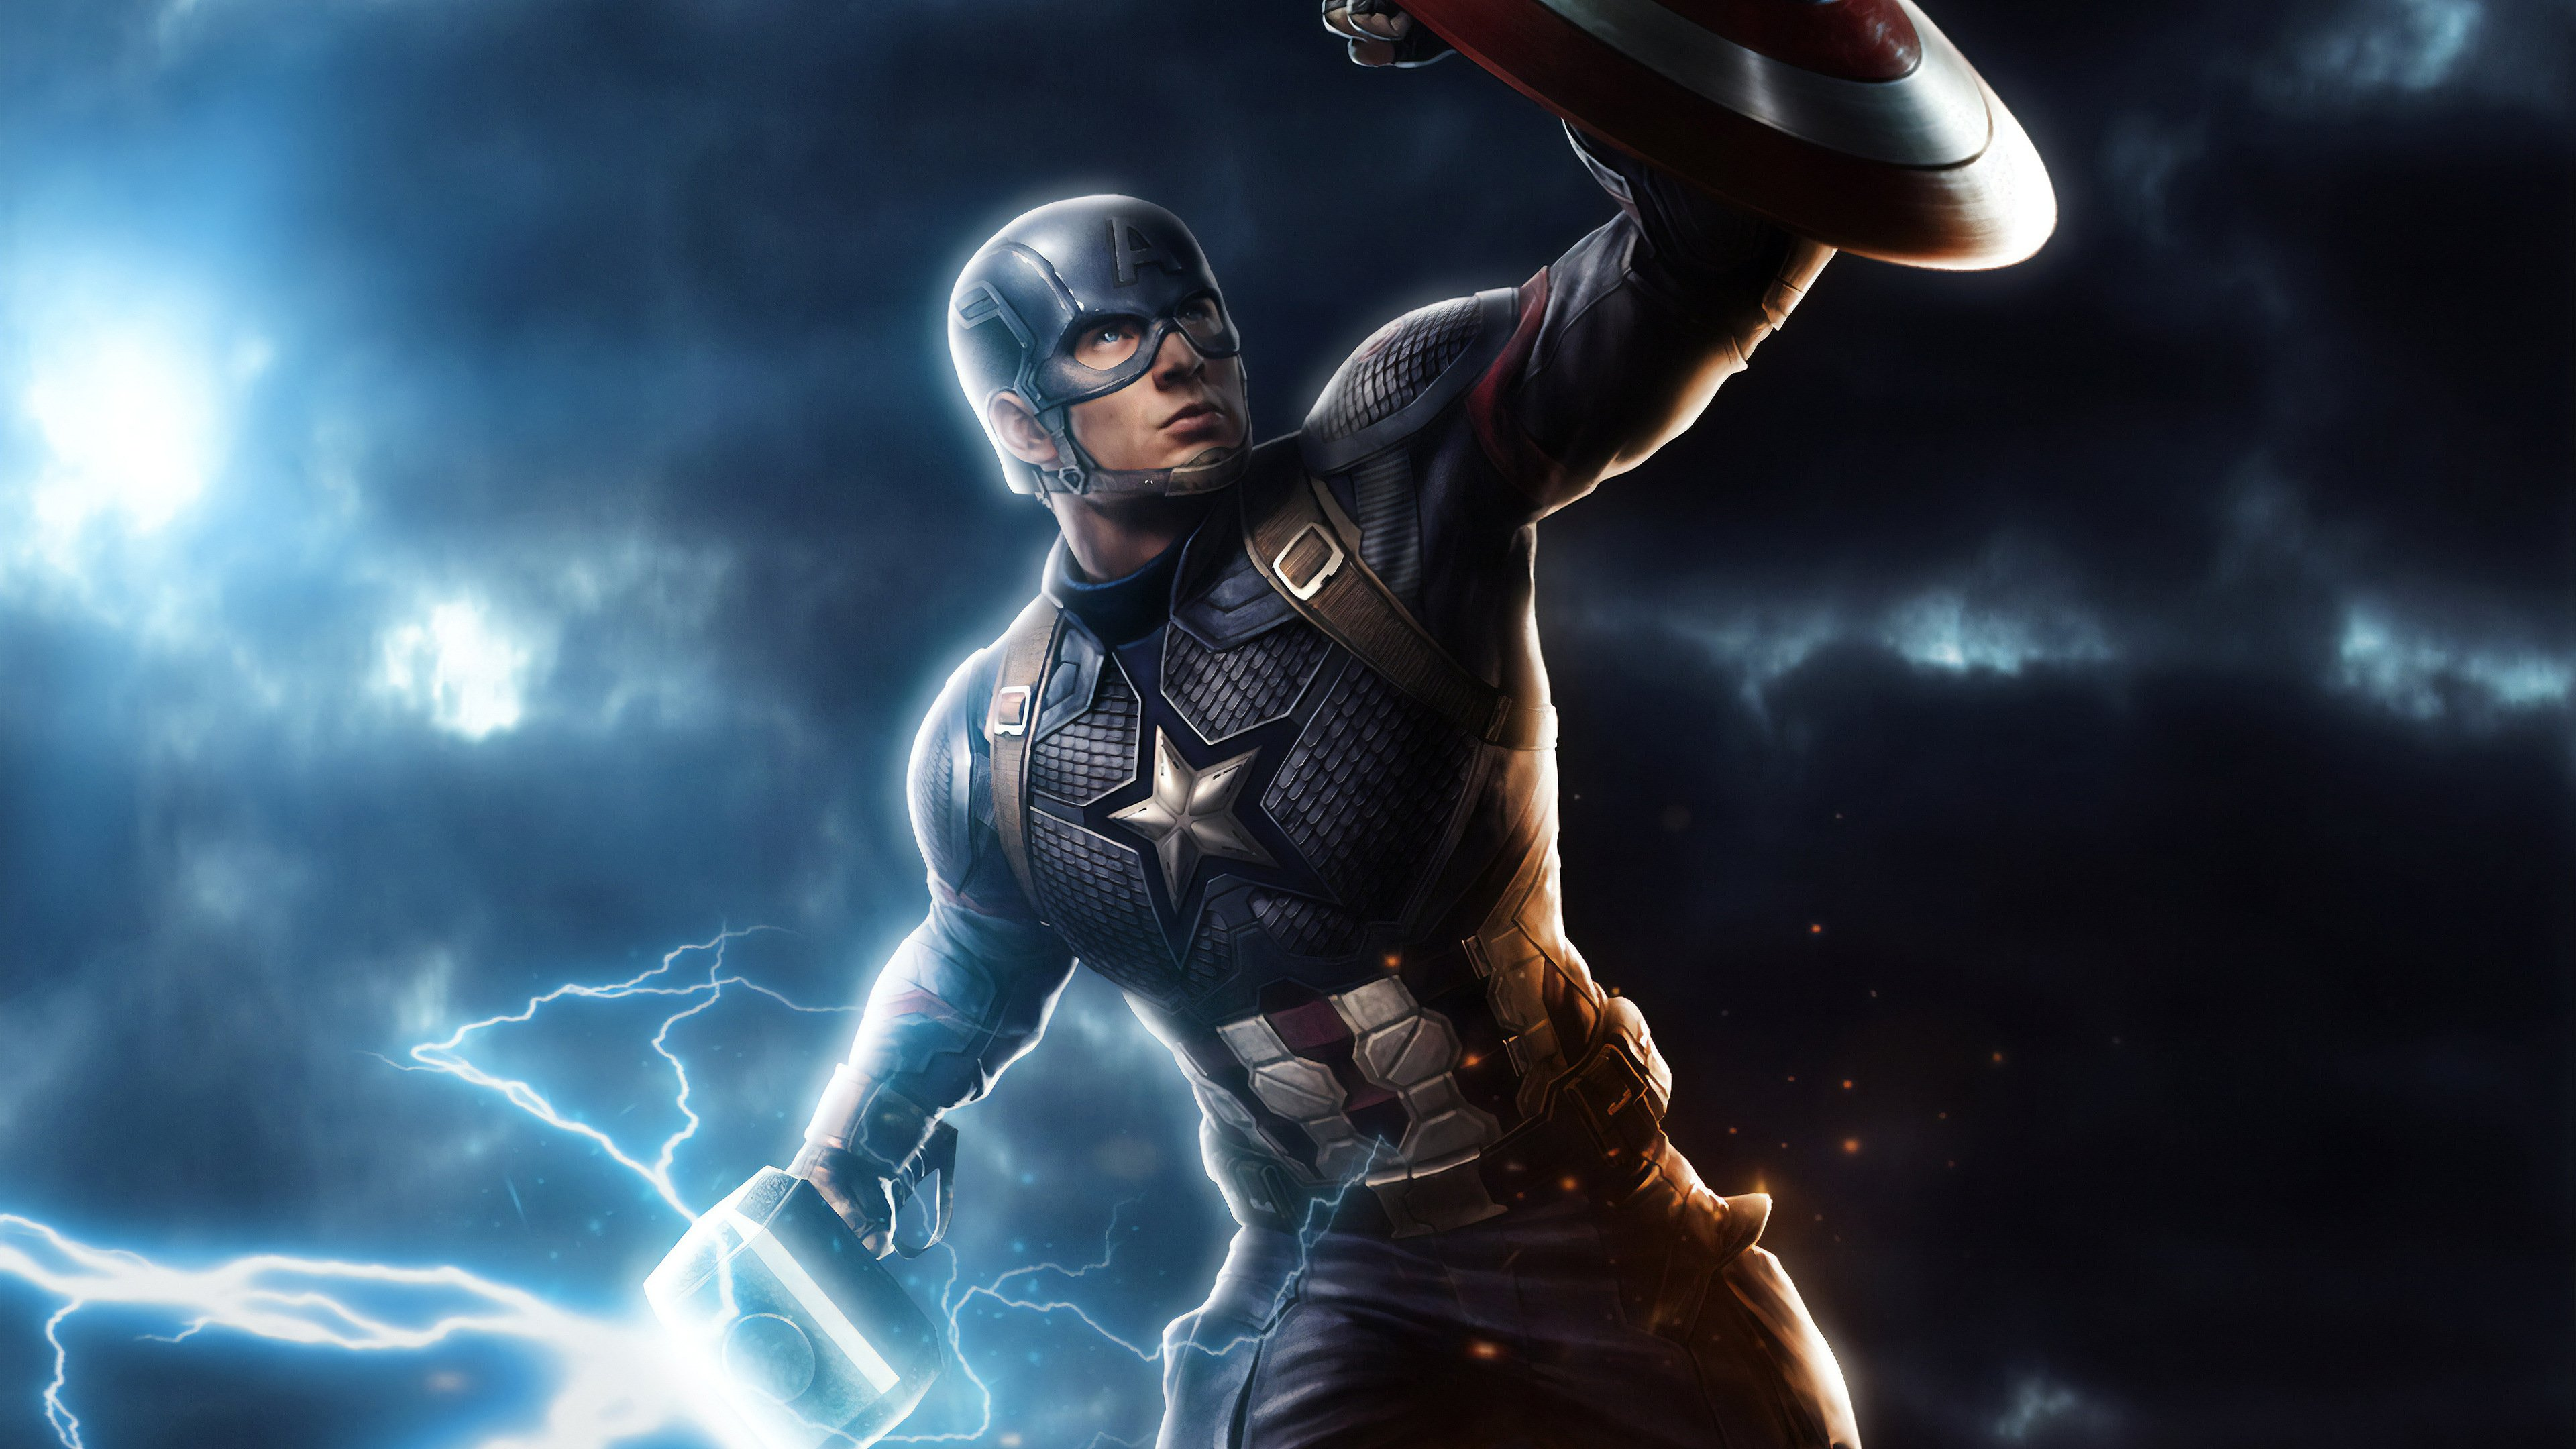 Hd Wallpapers For Pc Captain America